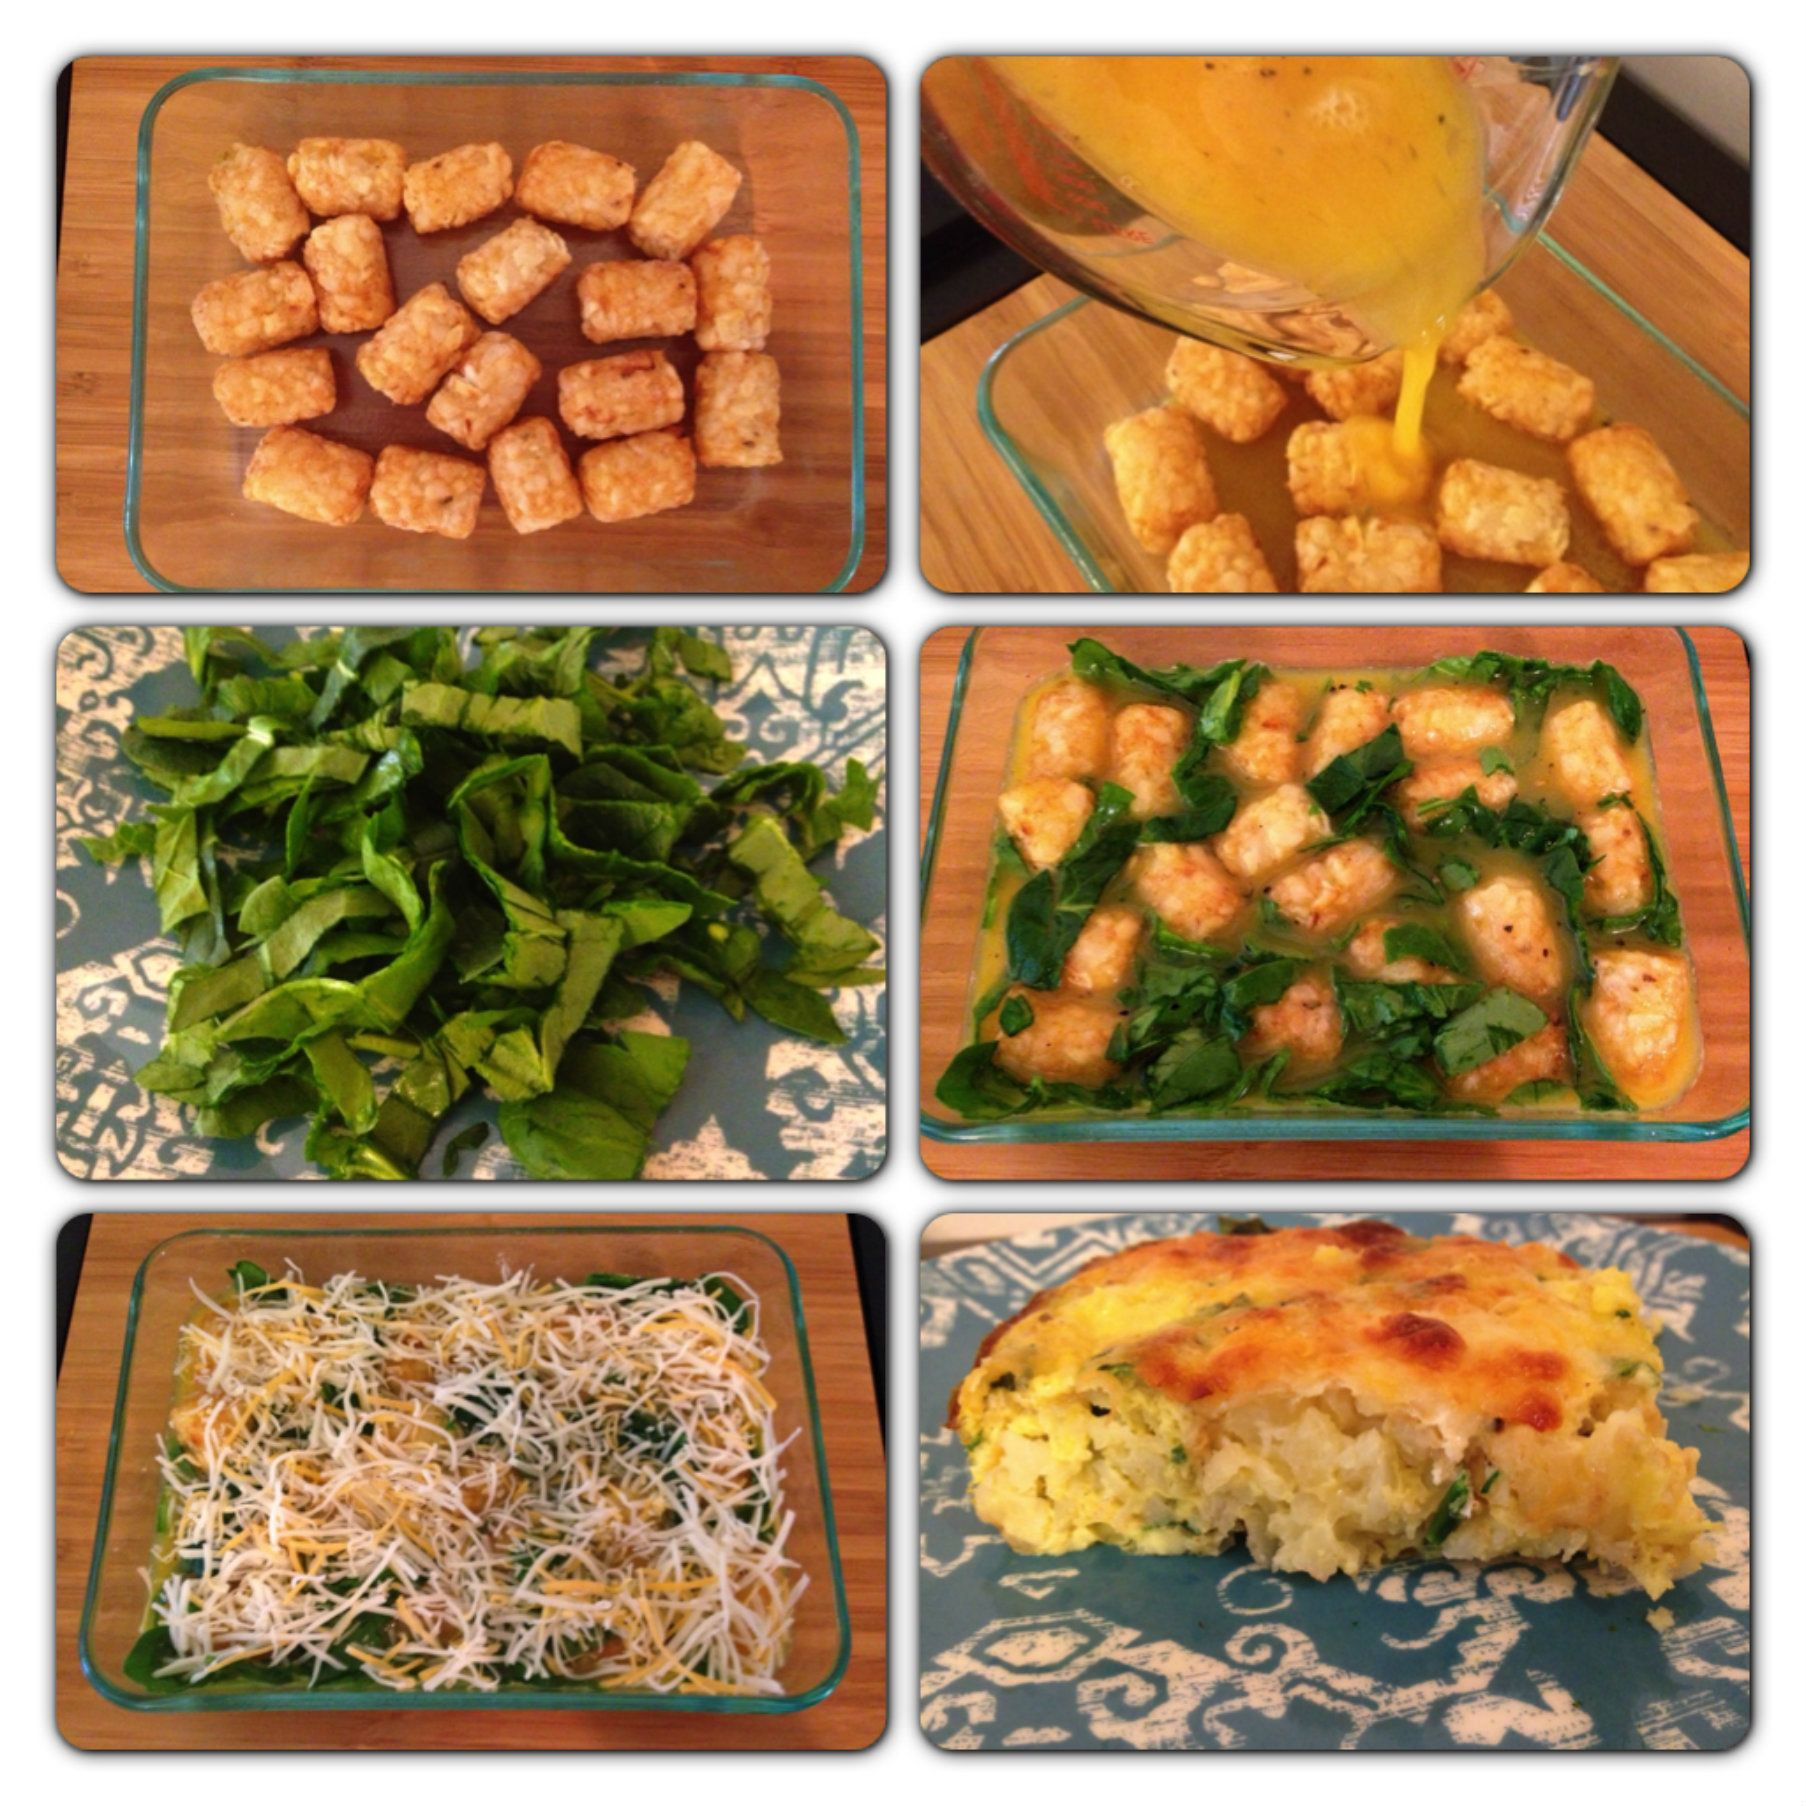 Tater Tot Breakfast Casserole Makeover. Only 318 calories